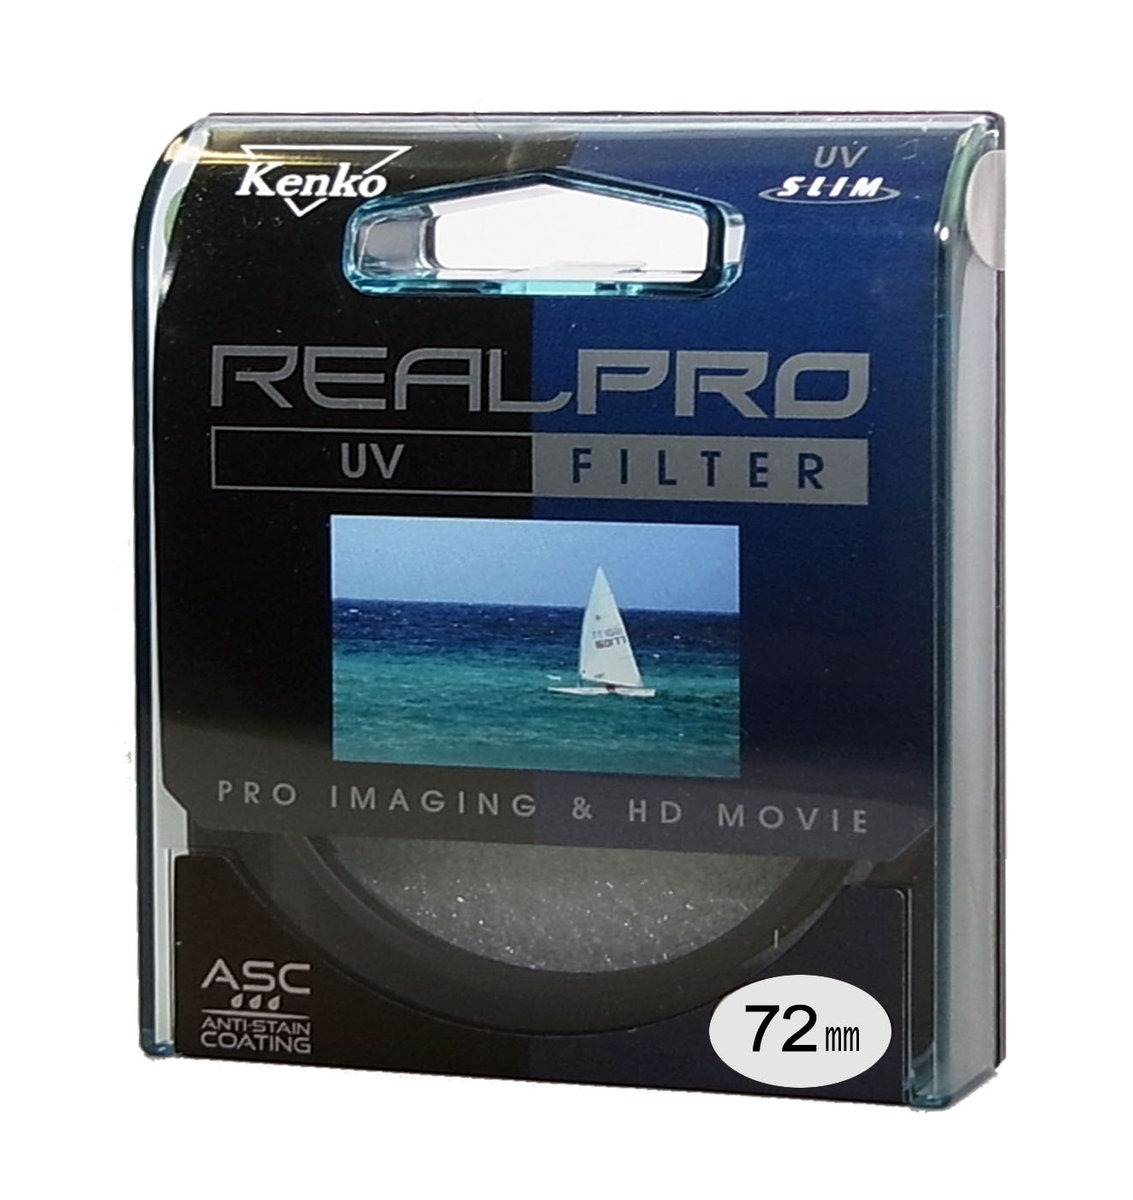 Kenko 72S Real Pro MC UV Filter